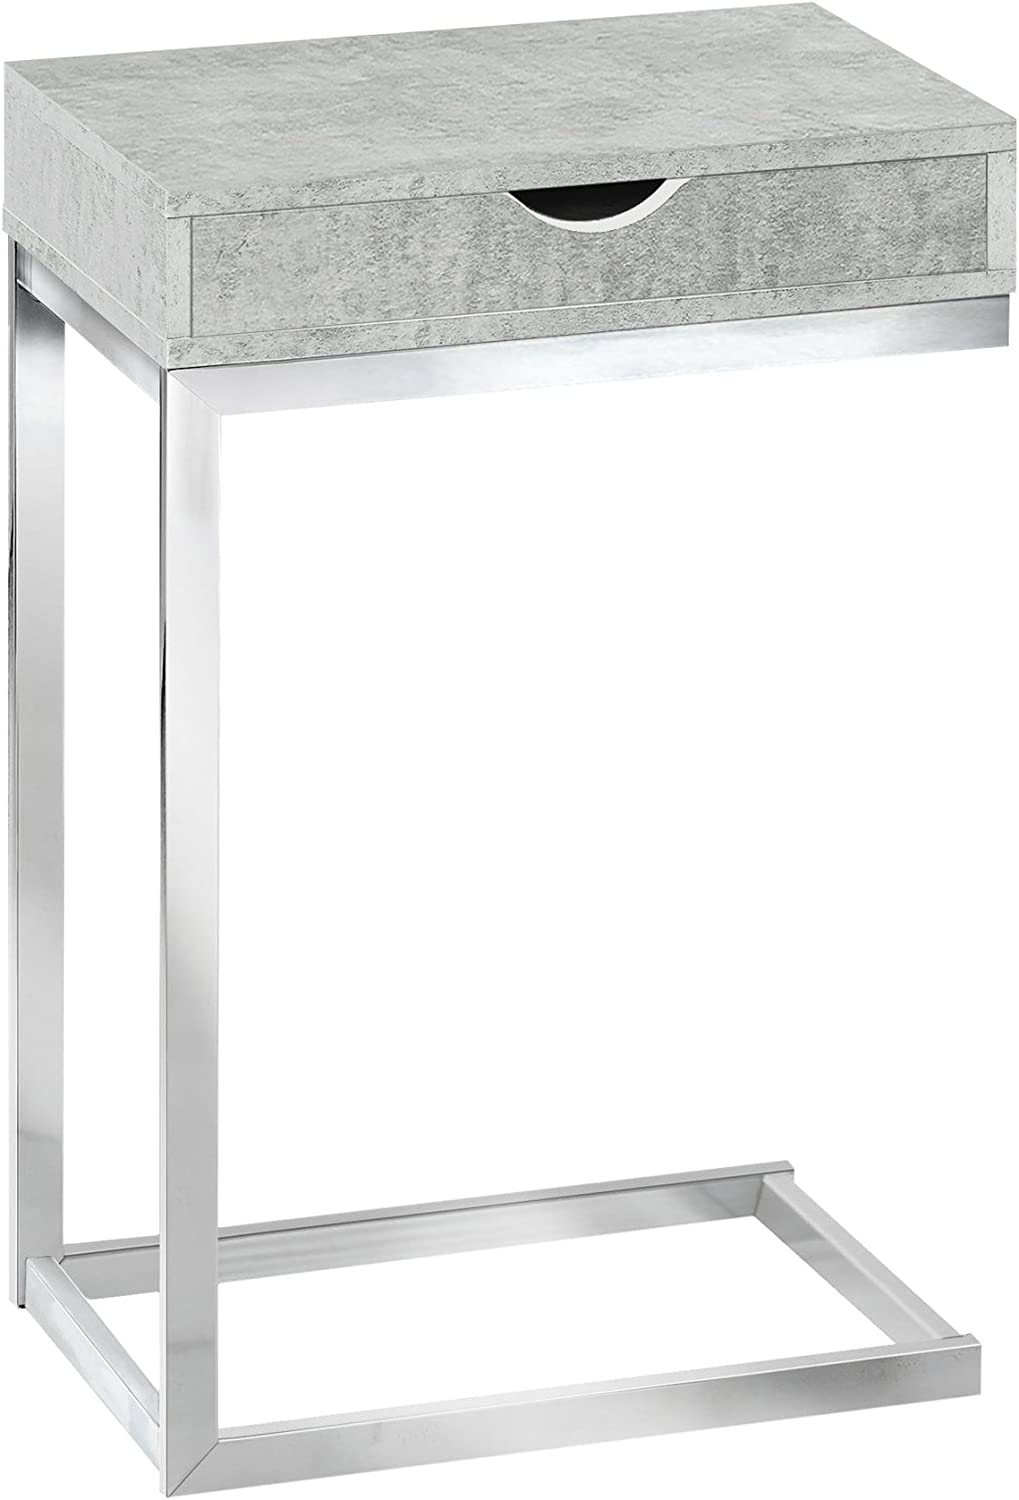 Monarch Specialties I 3373 Chrome Metal Grey Cement with A Drawer Accent Table